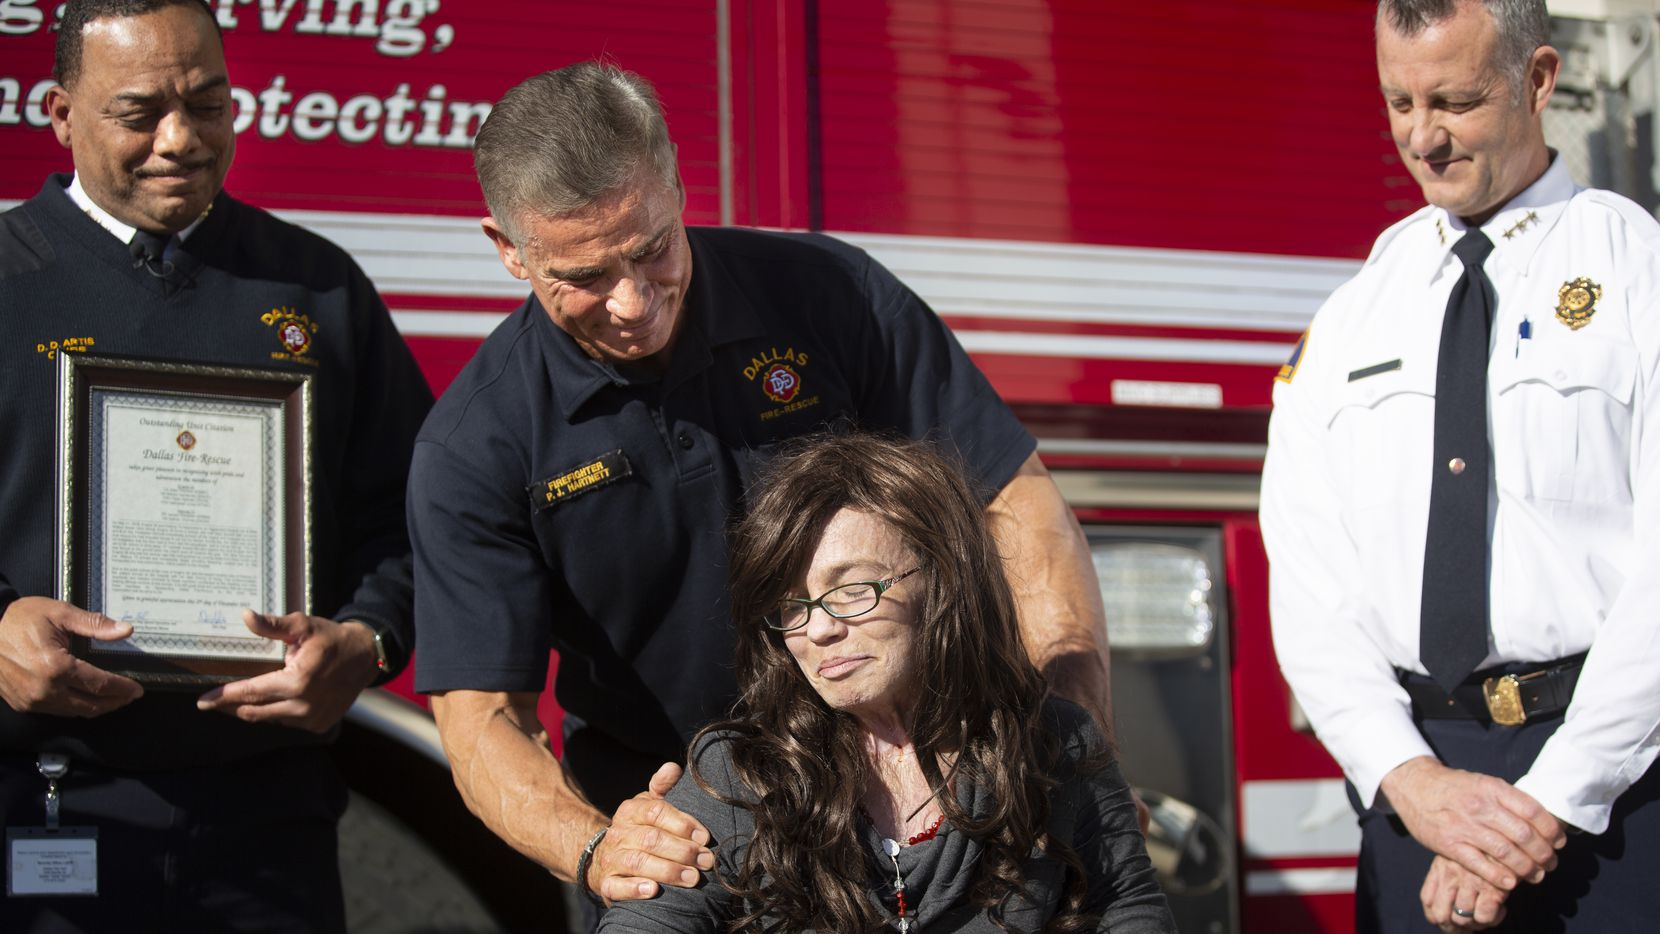 Dallas Fire-Rescue firefighter Peter Hartnett and Danyeil Townzen share a moment during a press conference honoring Hartnett and the rest of the crew riding DFR Engine 28 for saving Townzen's life last year. (Juan Figueroa/ The Dallas Morning News)